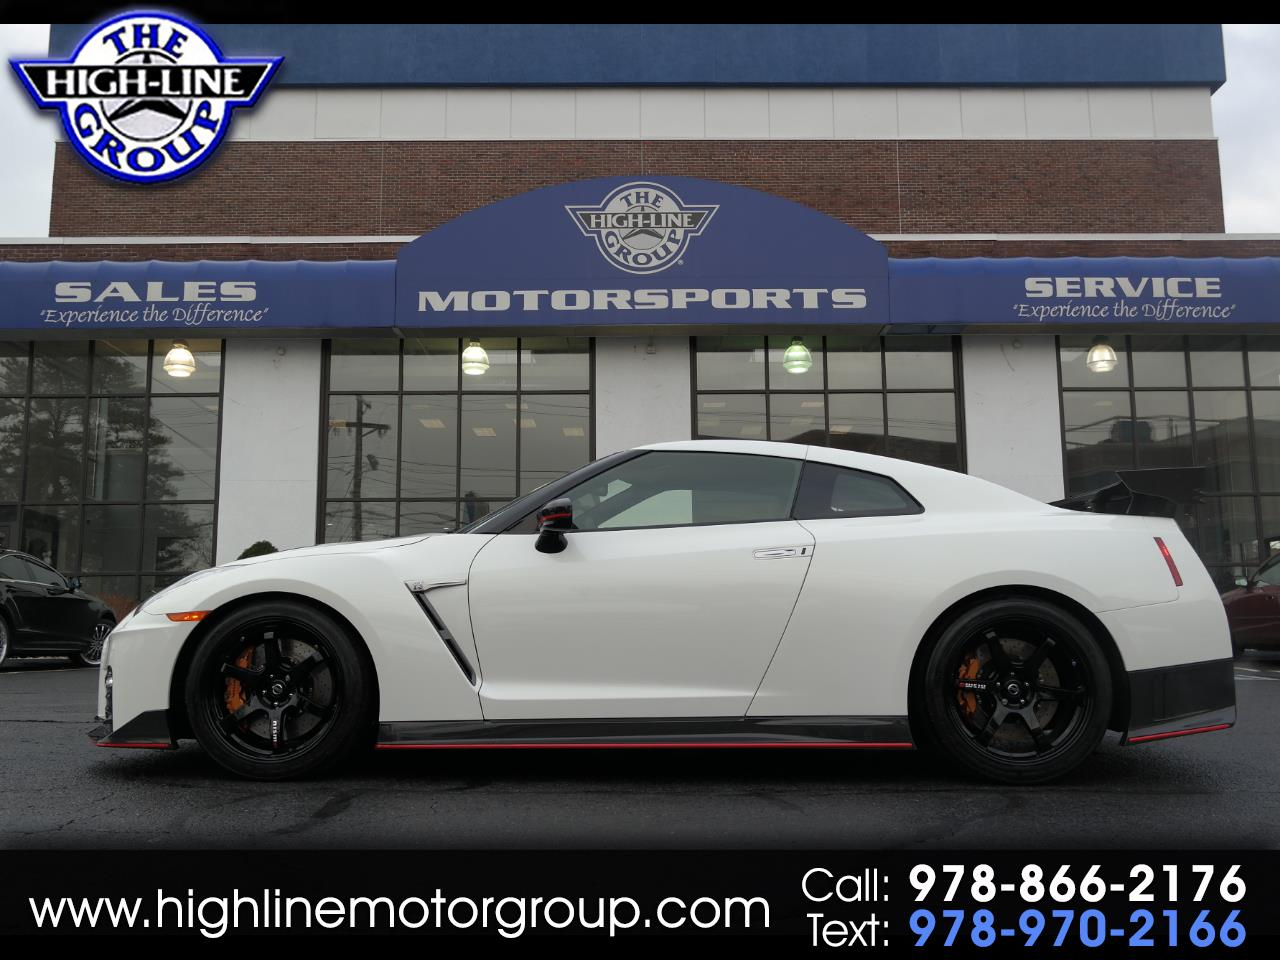 Buy Here Pay Here Ma >> Buy Here Pay Here Cars For Sale Lowell Ma 01851 The Highline Group